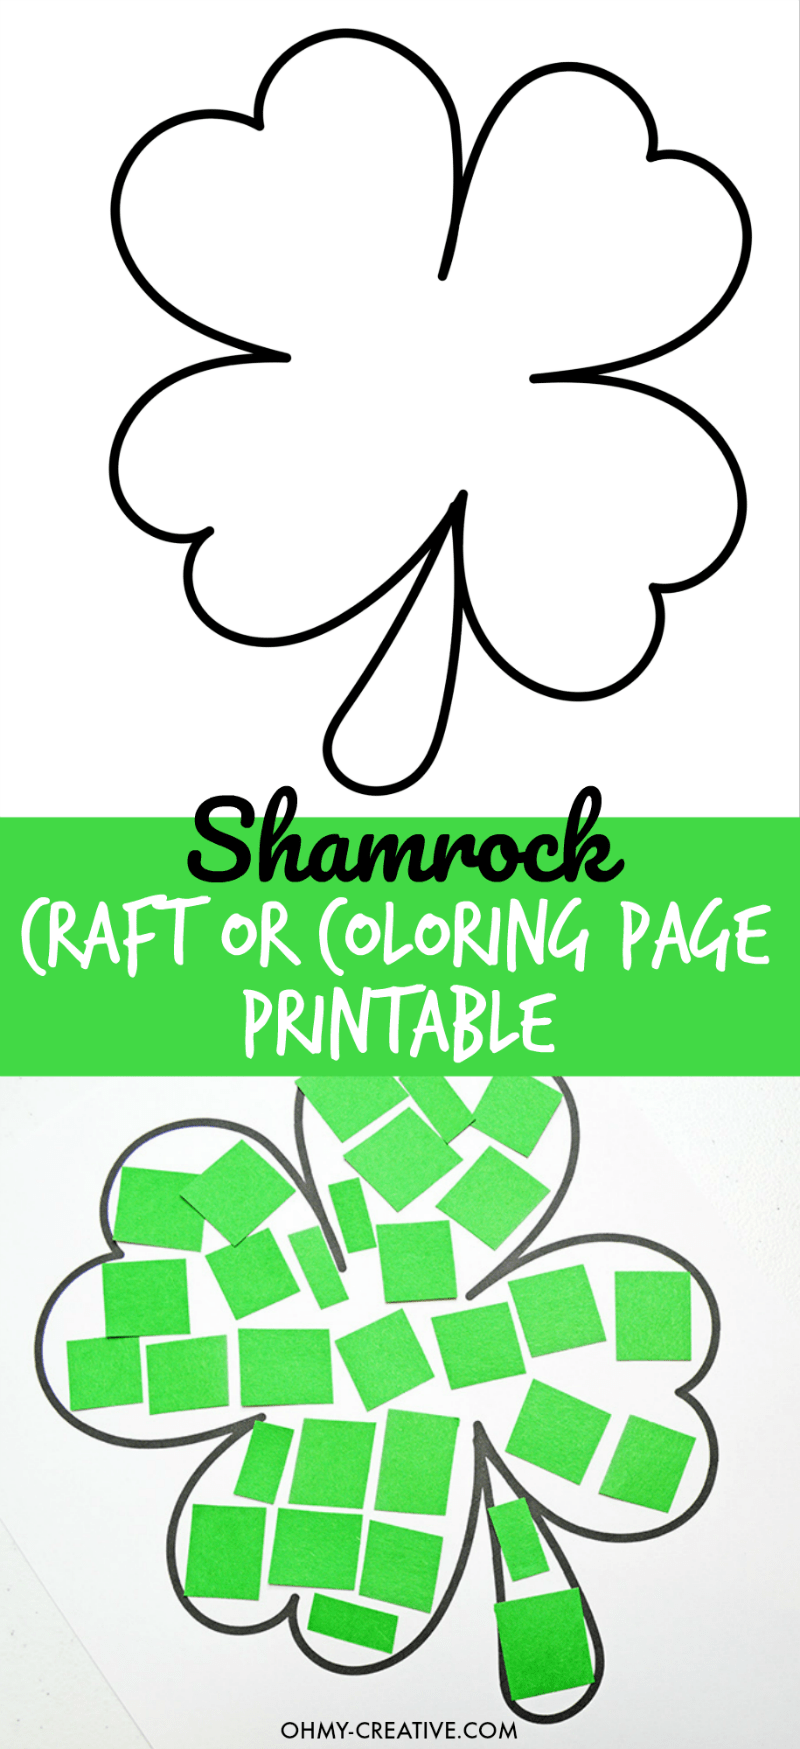 Cut And Paste Shamrock Template or Coloring Page - Oh My Creative